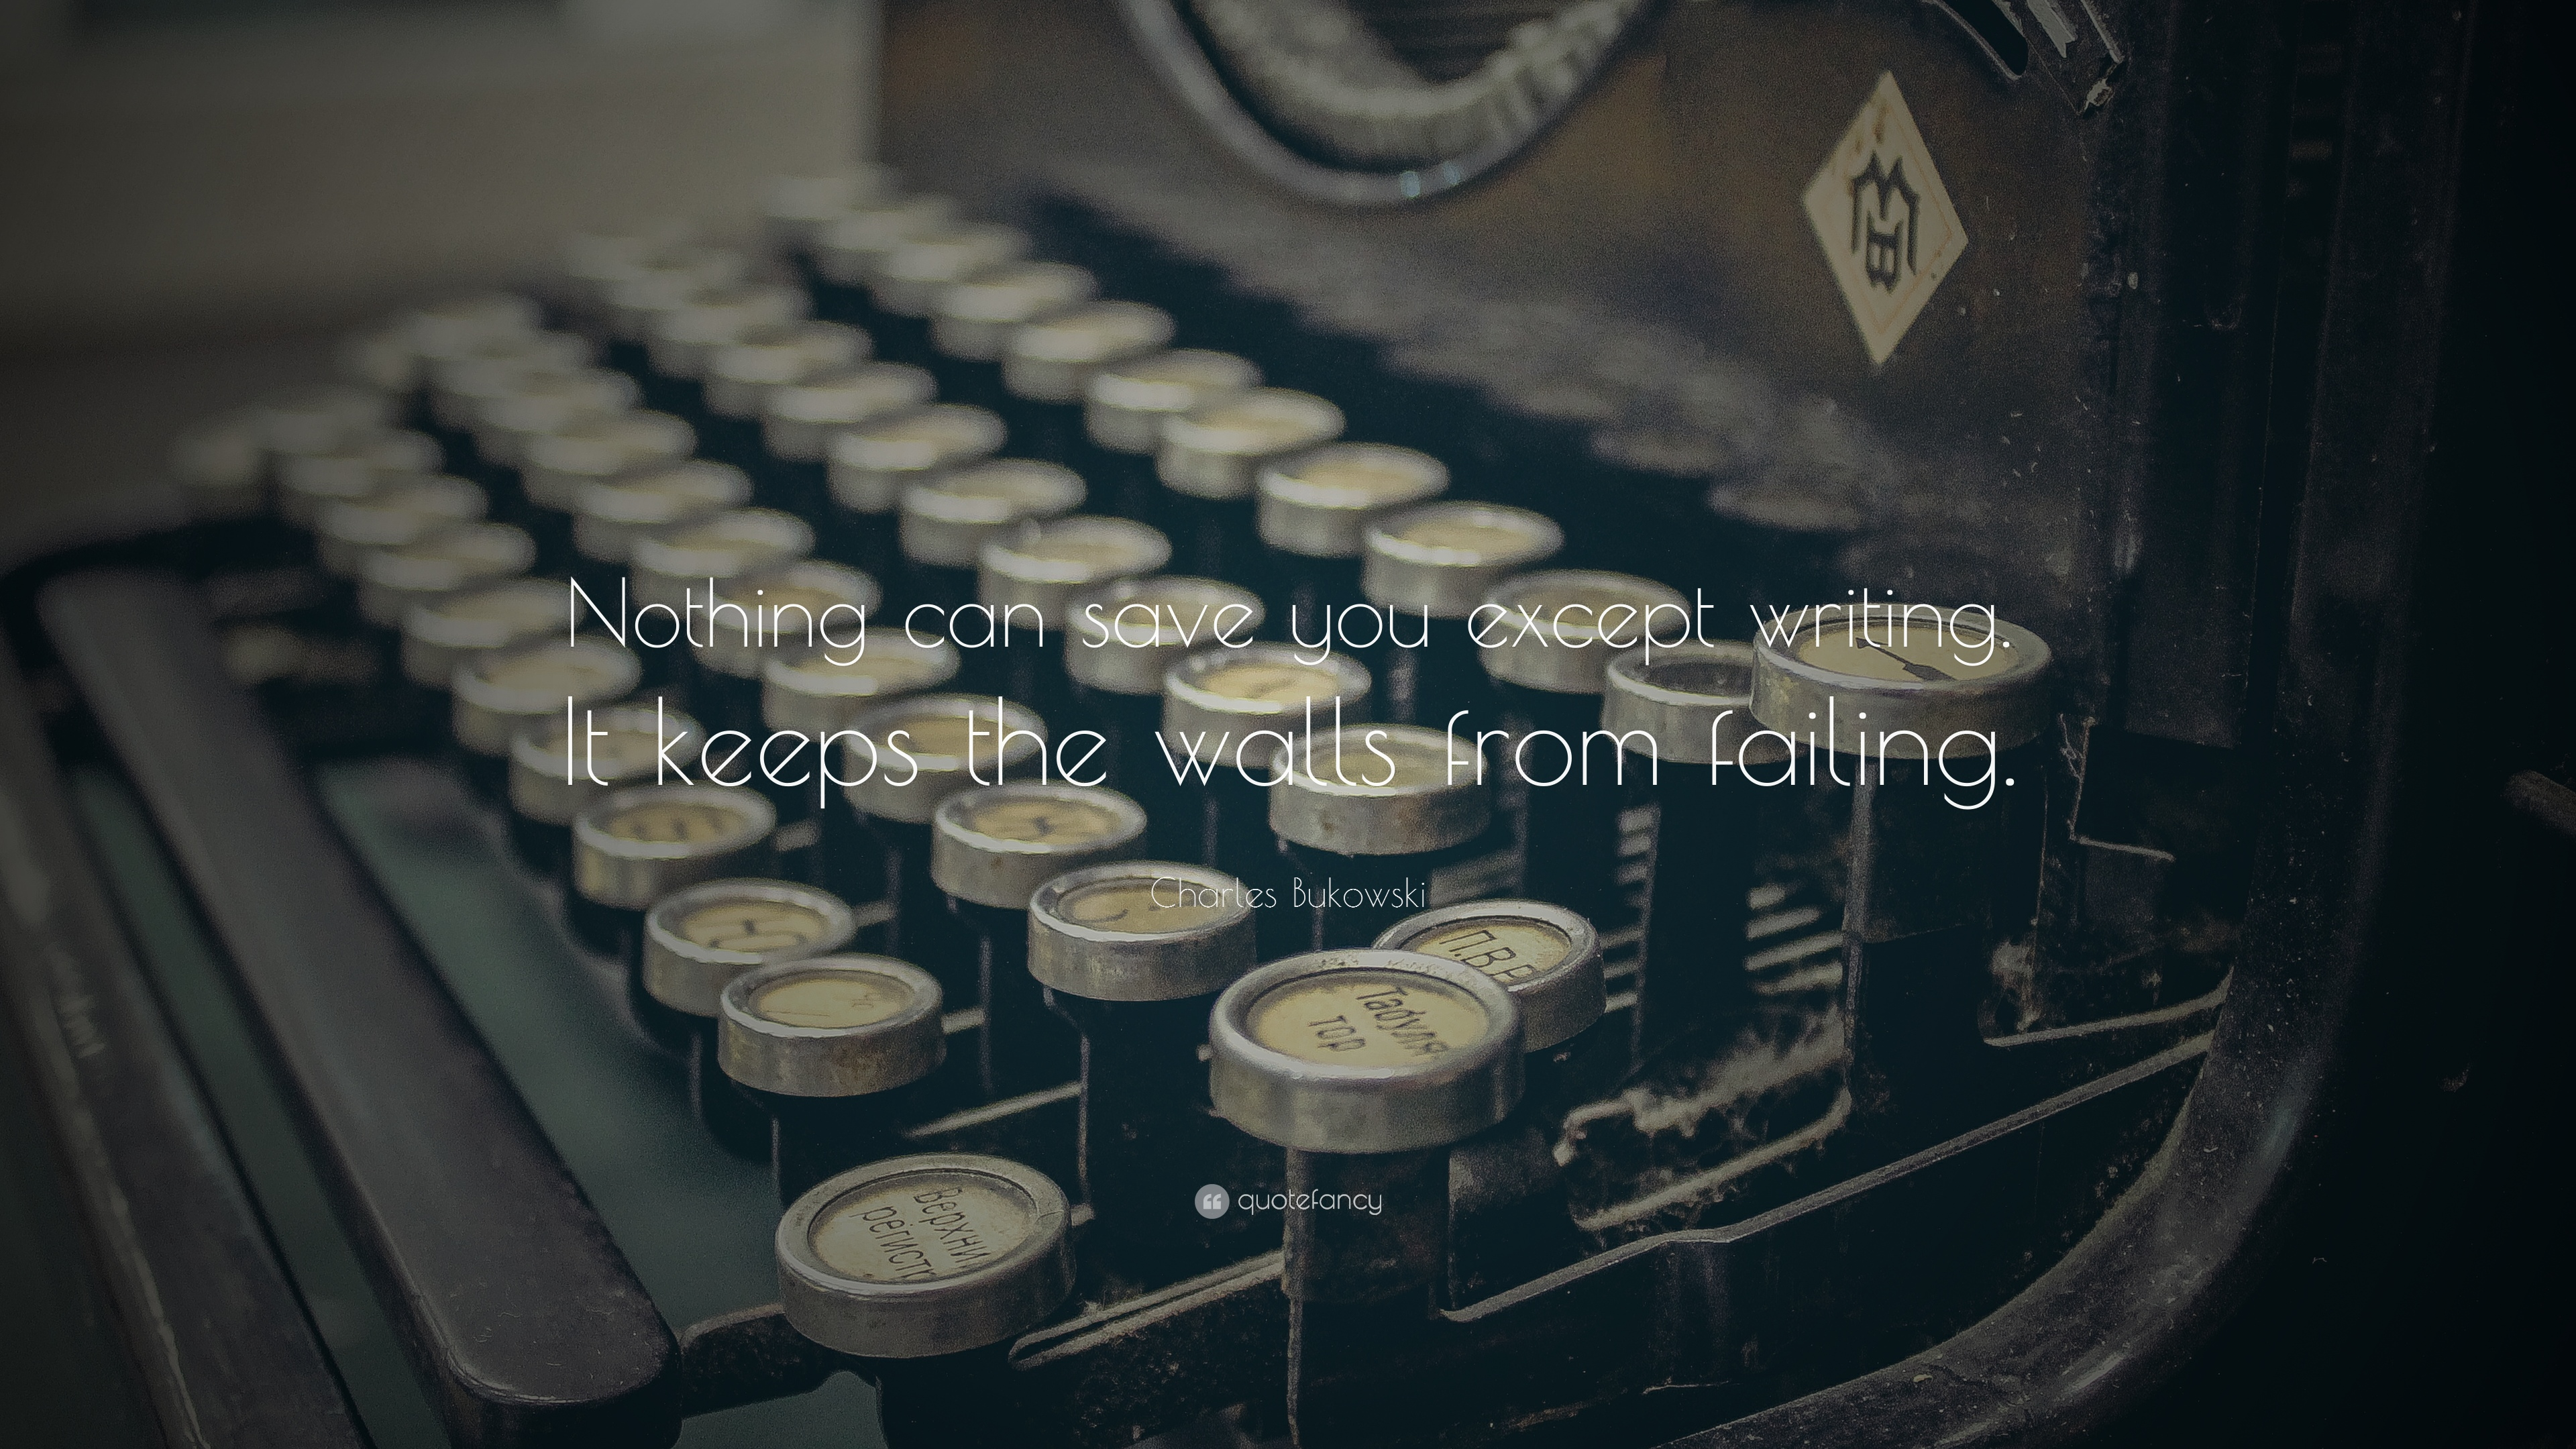 Source: Charles Bukowski Quotes 8 Wallpapers - Quotefancy